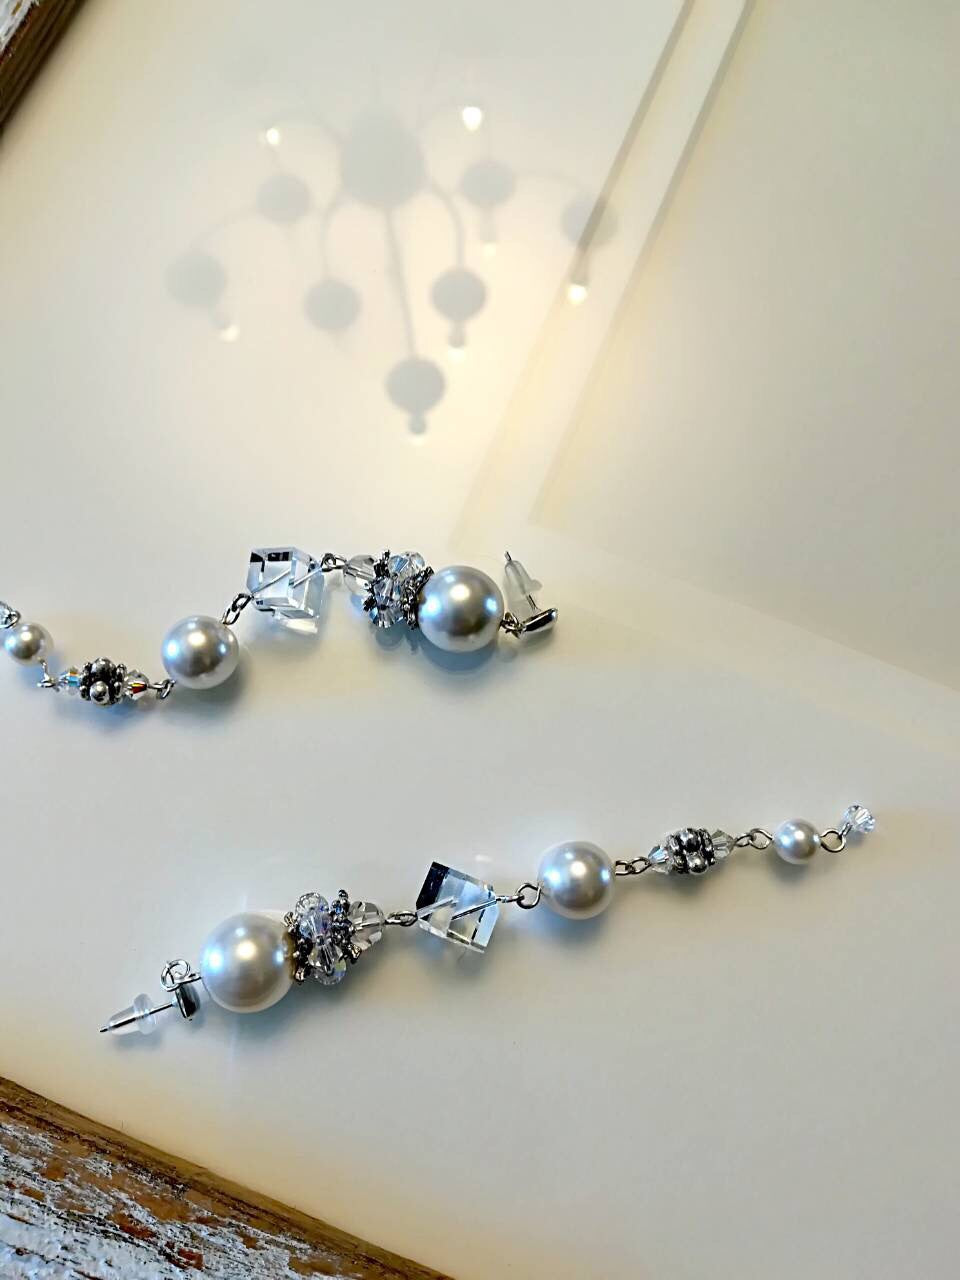 Hand made Earrings  With Swarovski Pearls and Crystals